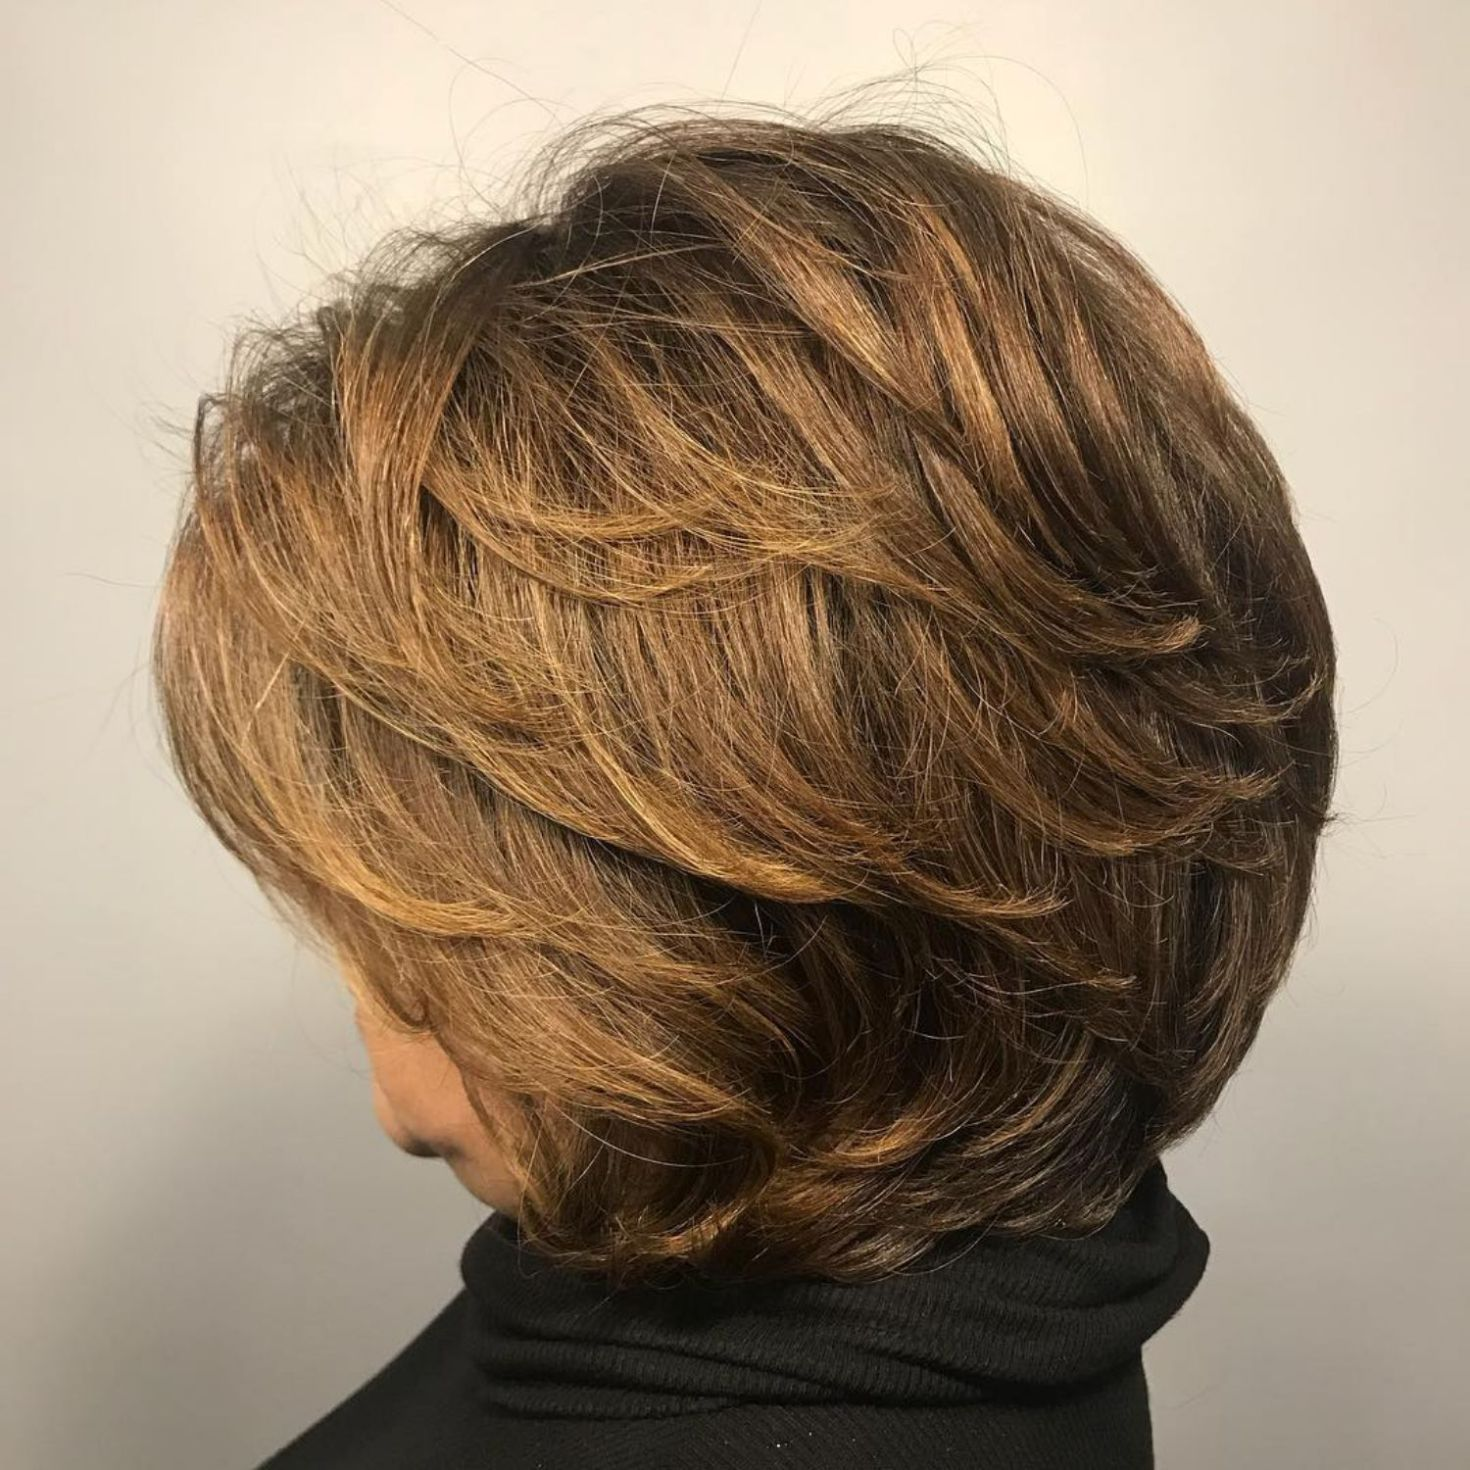 13++ Best haircuts for women over 60 ideas ideas